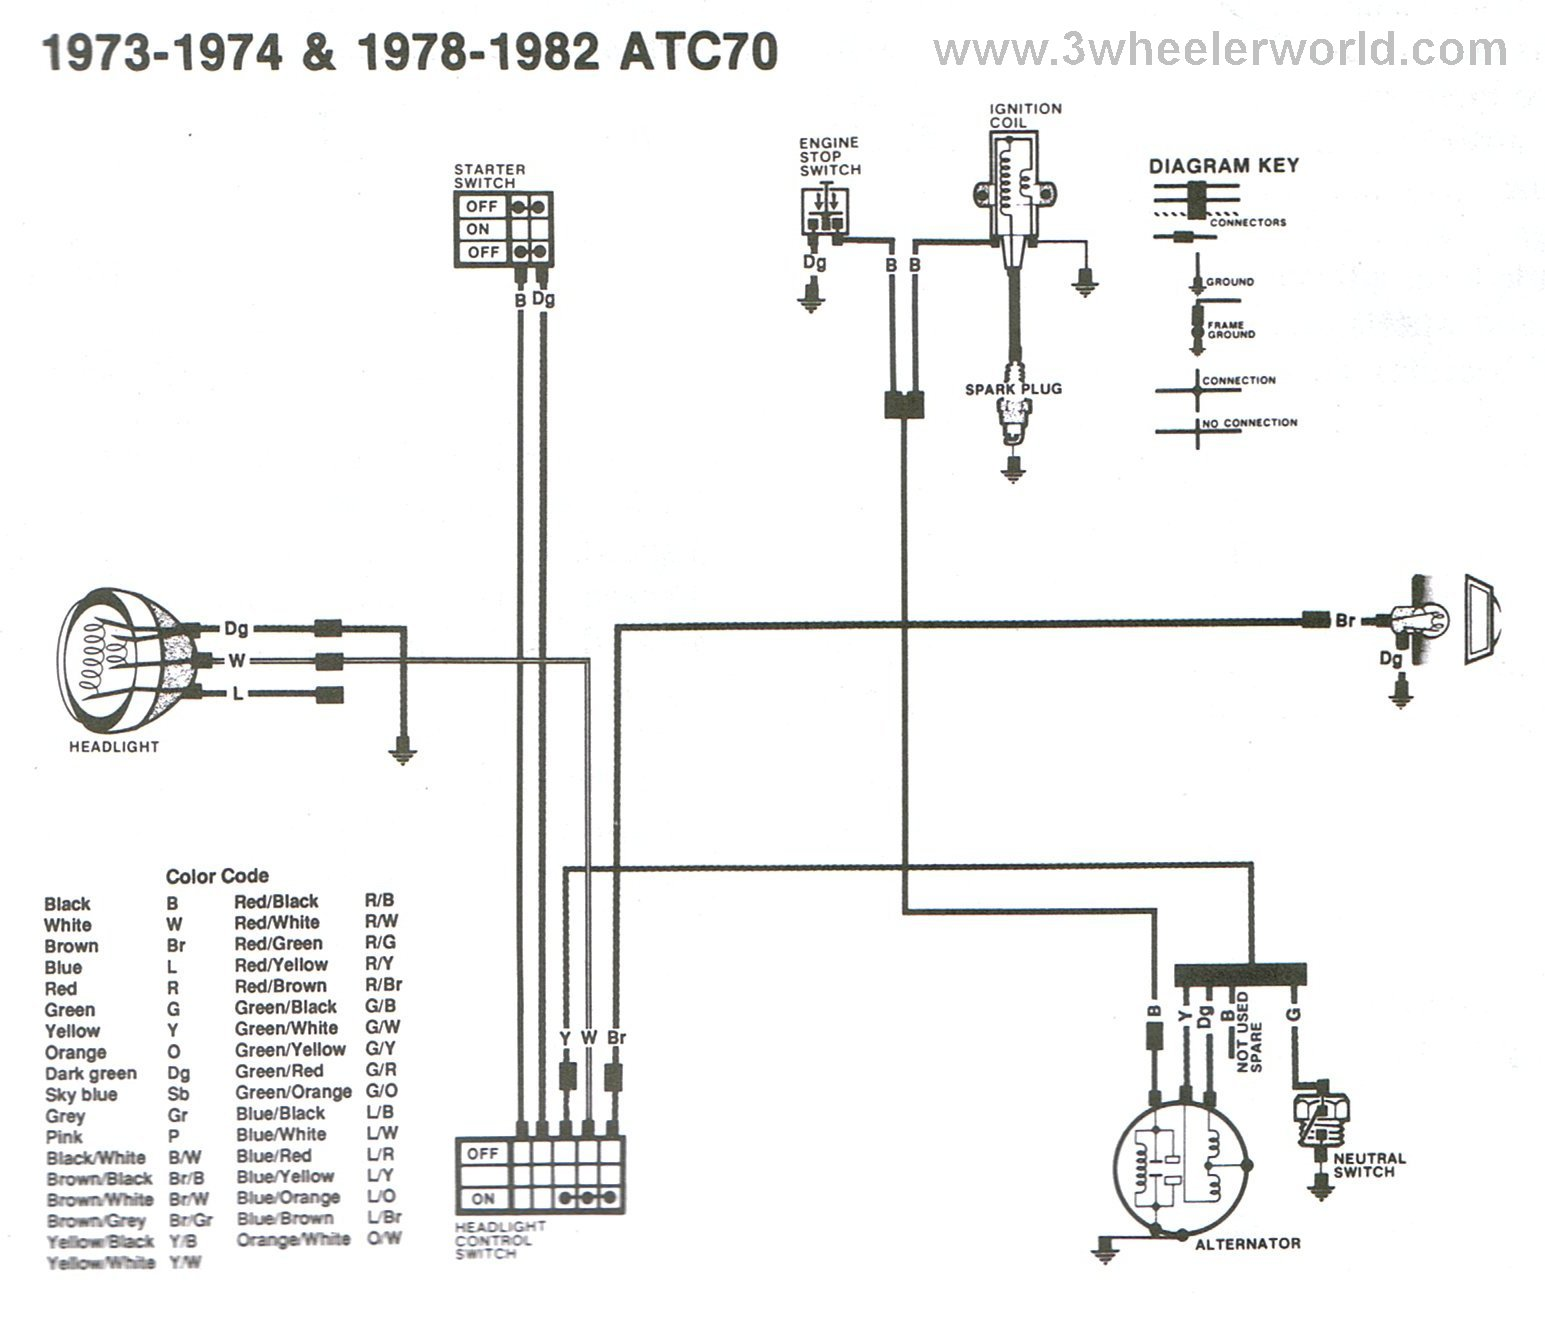 post 4946 1235948993 atc 70 wiring diagram honda 70 talk dumont dune riders atc 70 wiring diagram at bayanpartner.co